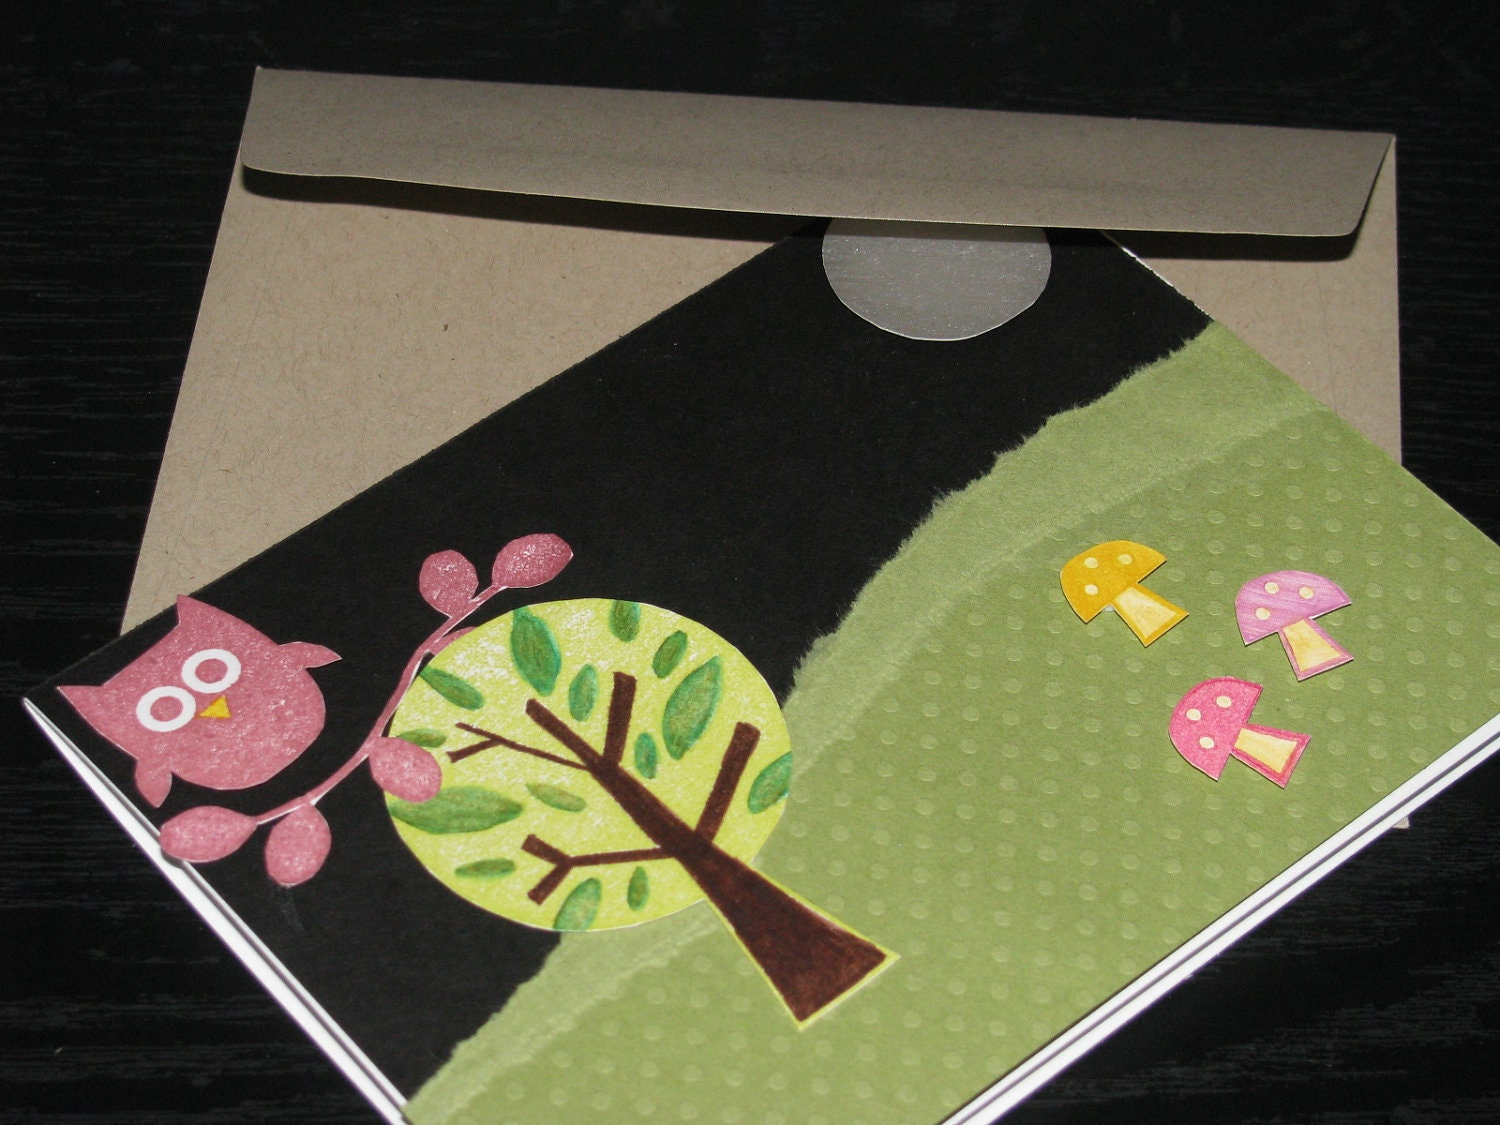 Blank Greeting Card - Forest Friends at Night with Owl and Mushrooms